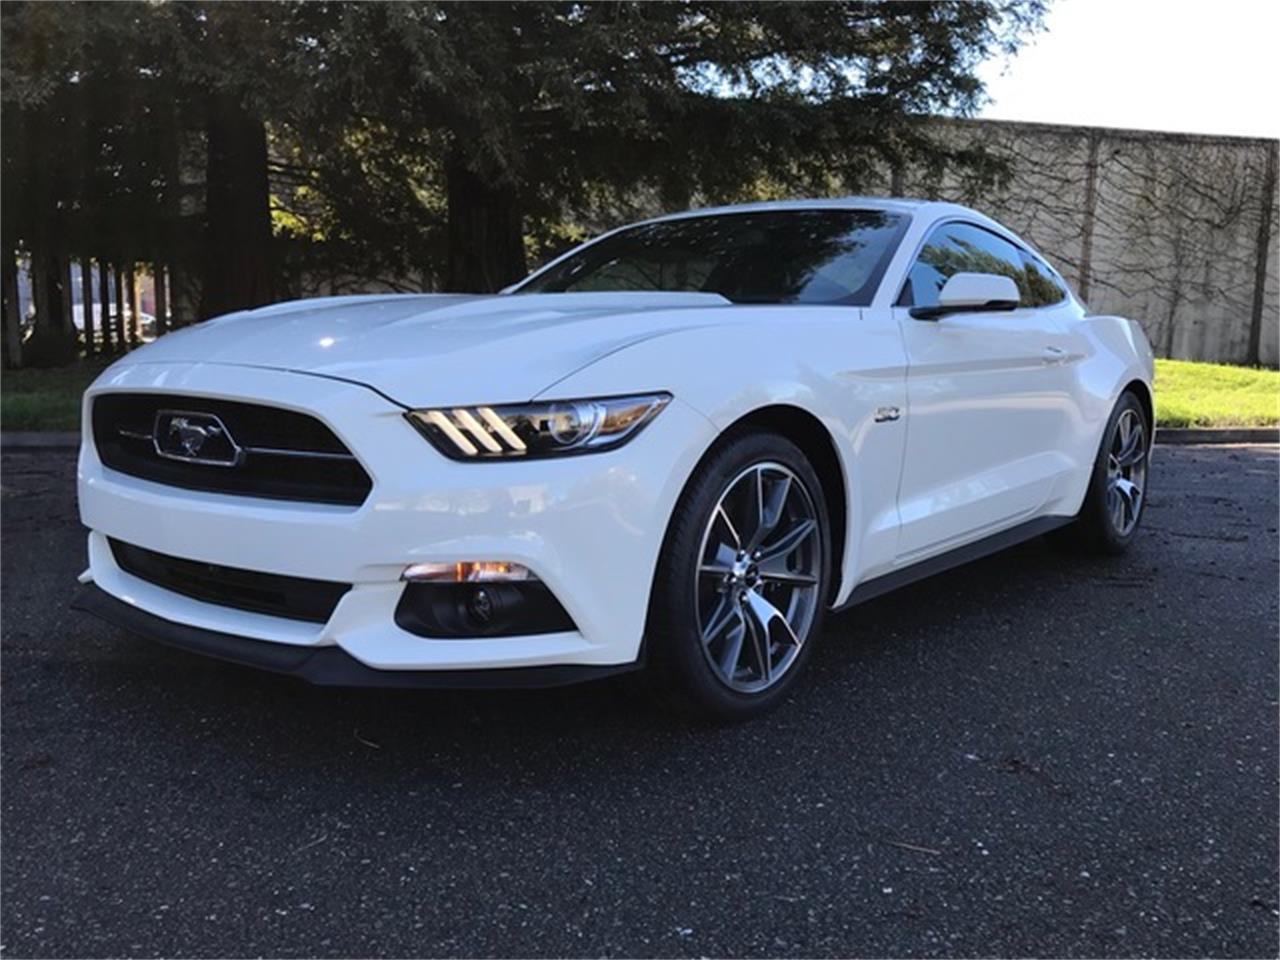 2015 Mustang Gt Pictures For Sale 2015 Ford Mustang Gt In Napa Valley California